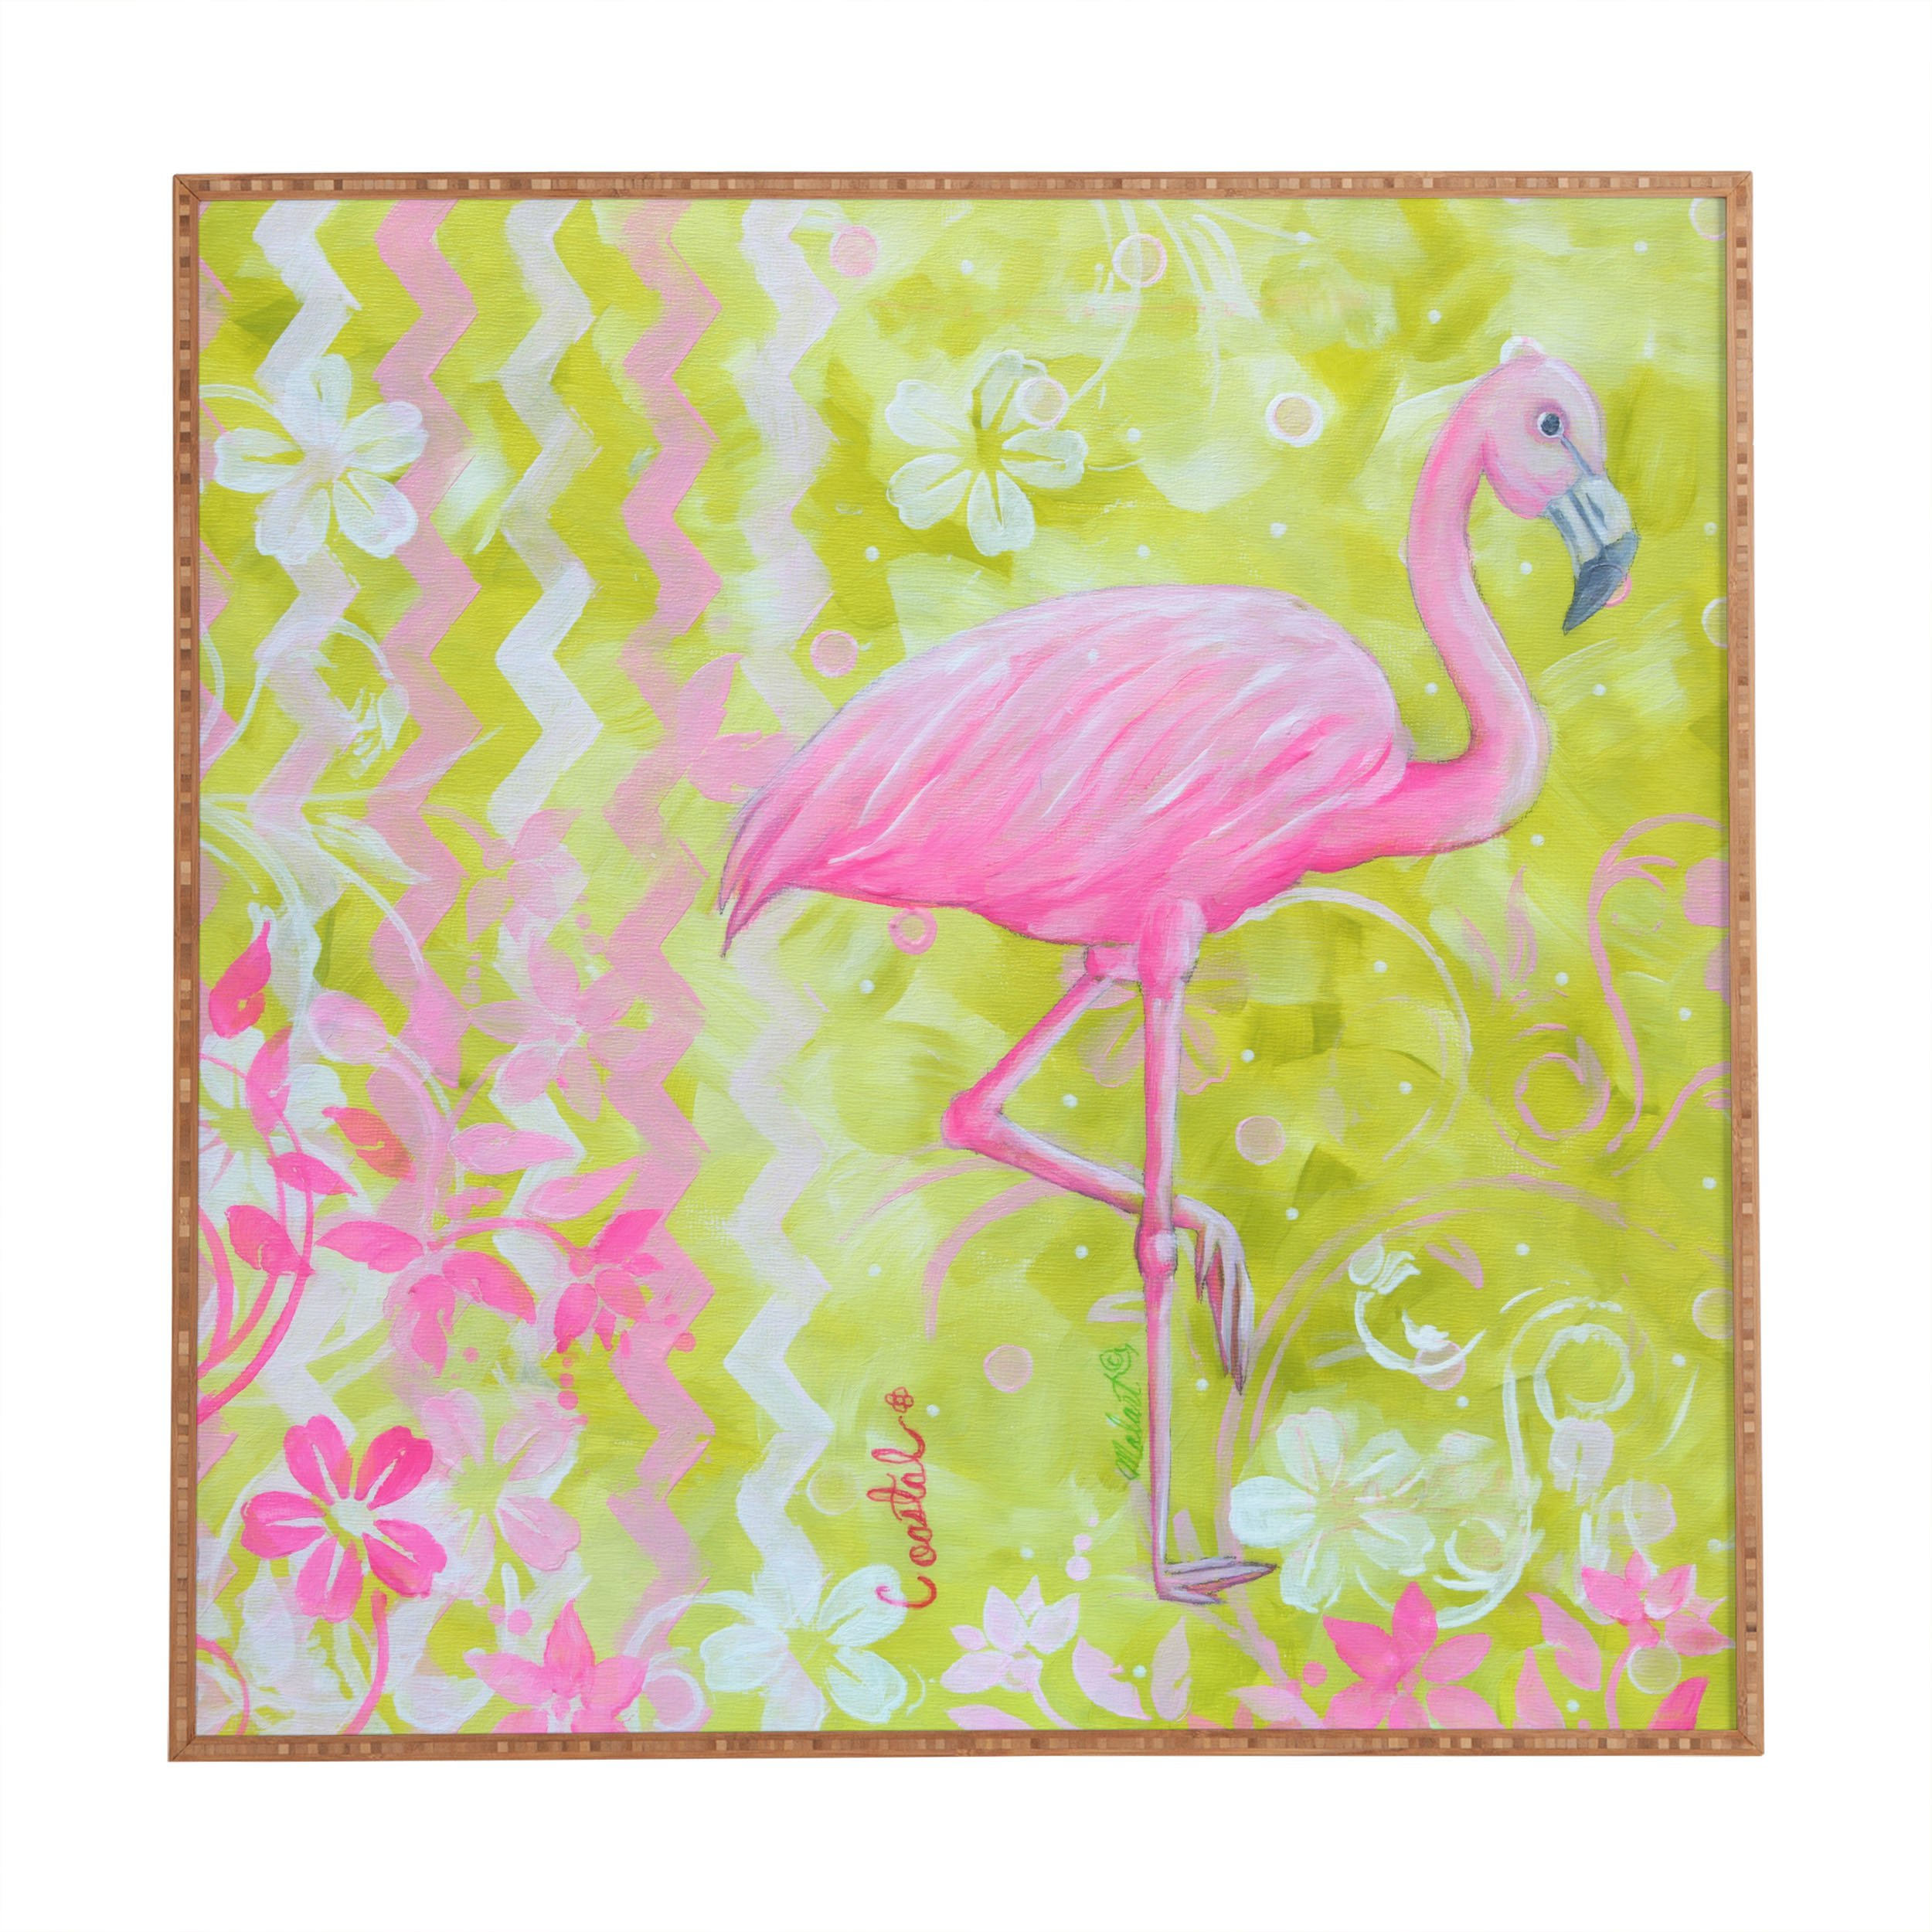 Deny Designs Madart Inc.,  Flamingo Dance, Framed Wall Art, Large, 30'' x 30''